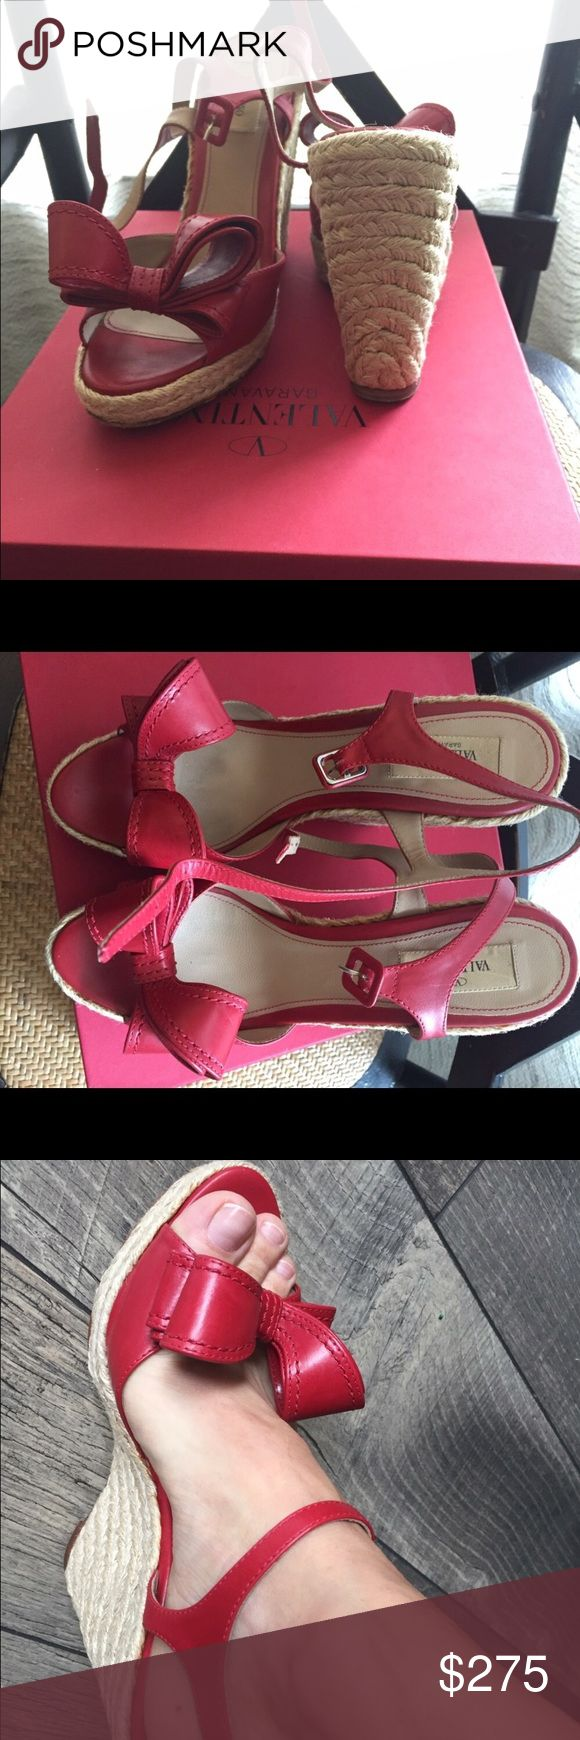 Valentino Wedges Gently worn beautiful red Valentino Sandals. Retailed for $495 worn 4 times. In almost new condition. Feel free to make me a reasonable offer. Valentino Shoes Wedges